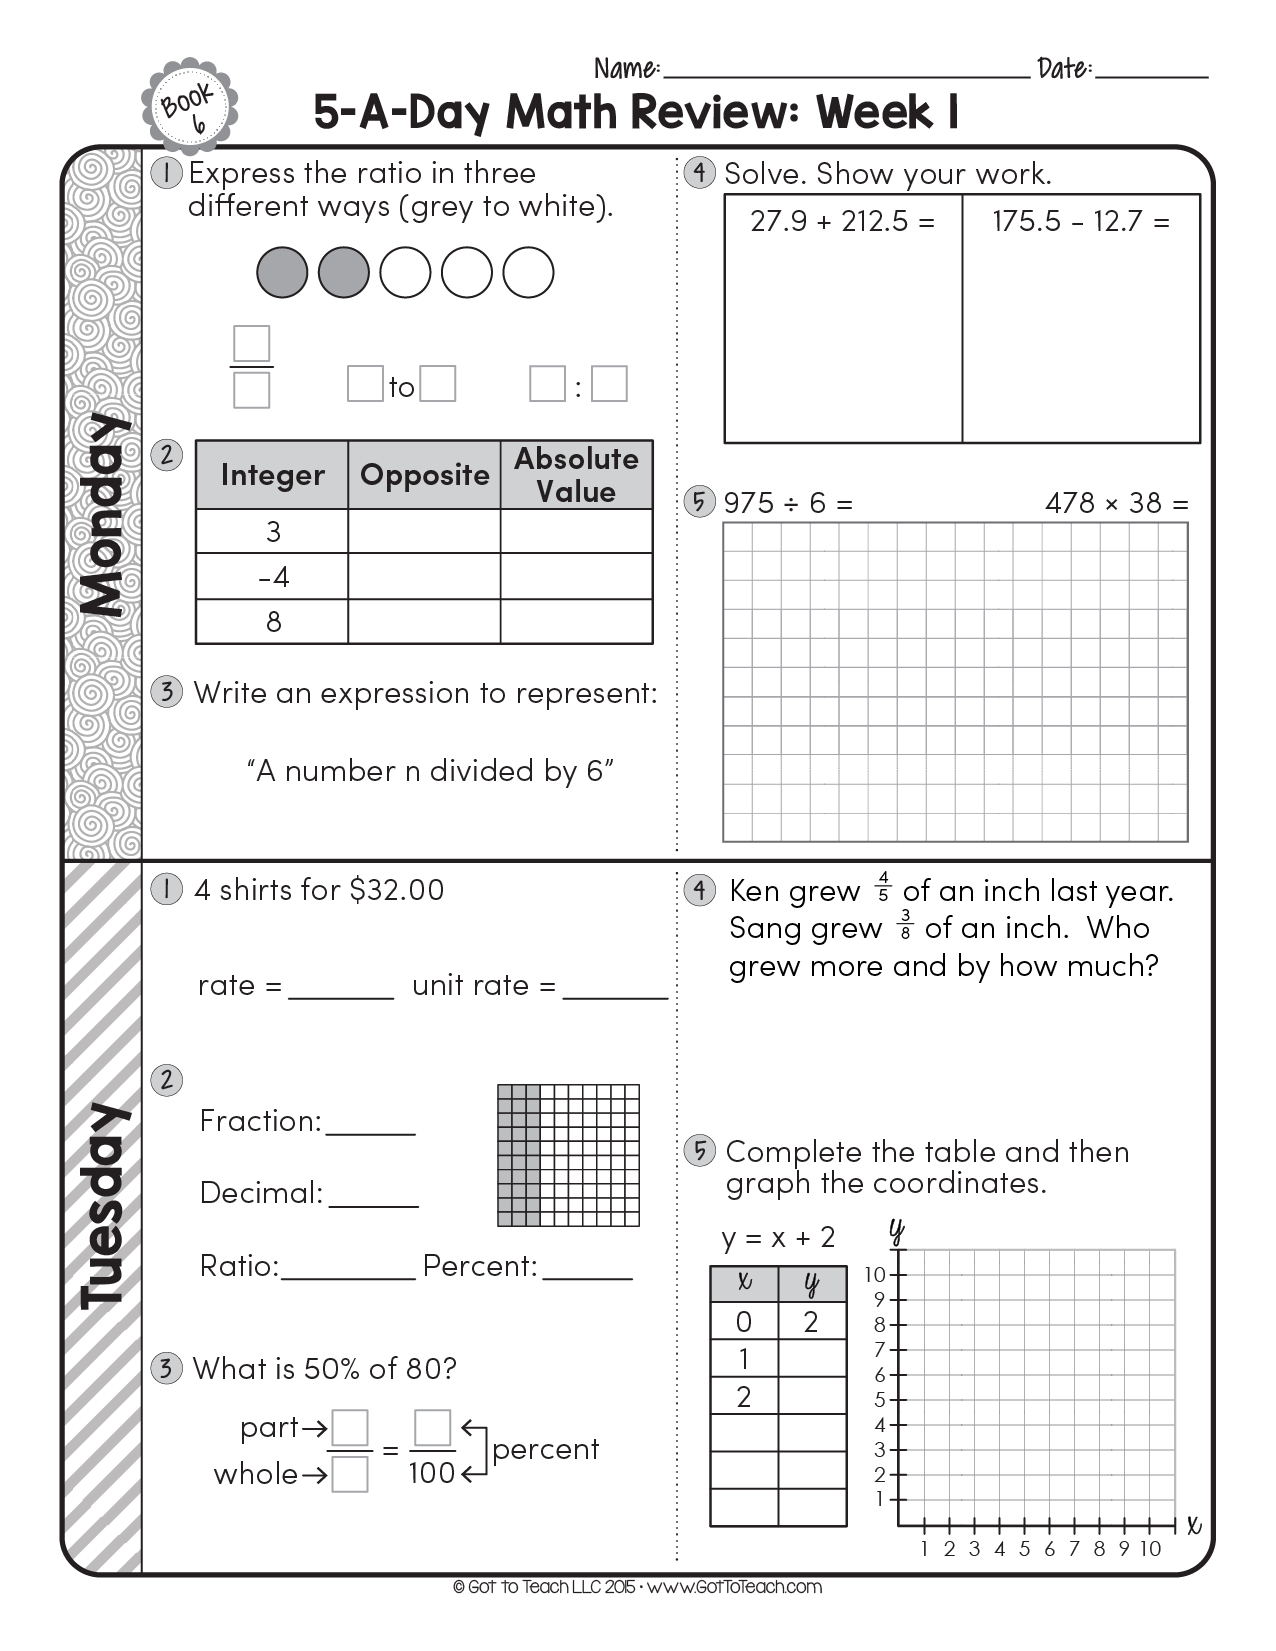 hight resolution of Daily Math Spiral Worksheet   Printable Worksheets and Activities for  Teachers